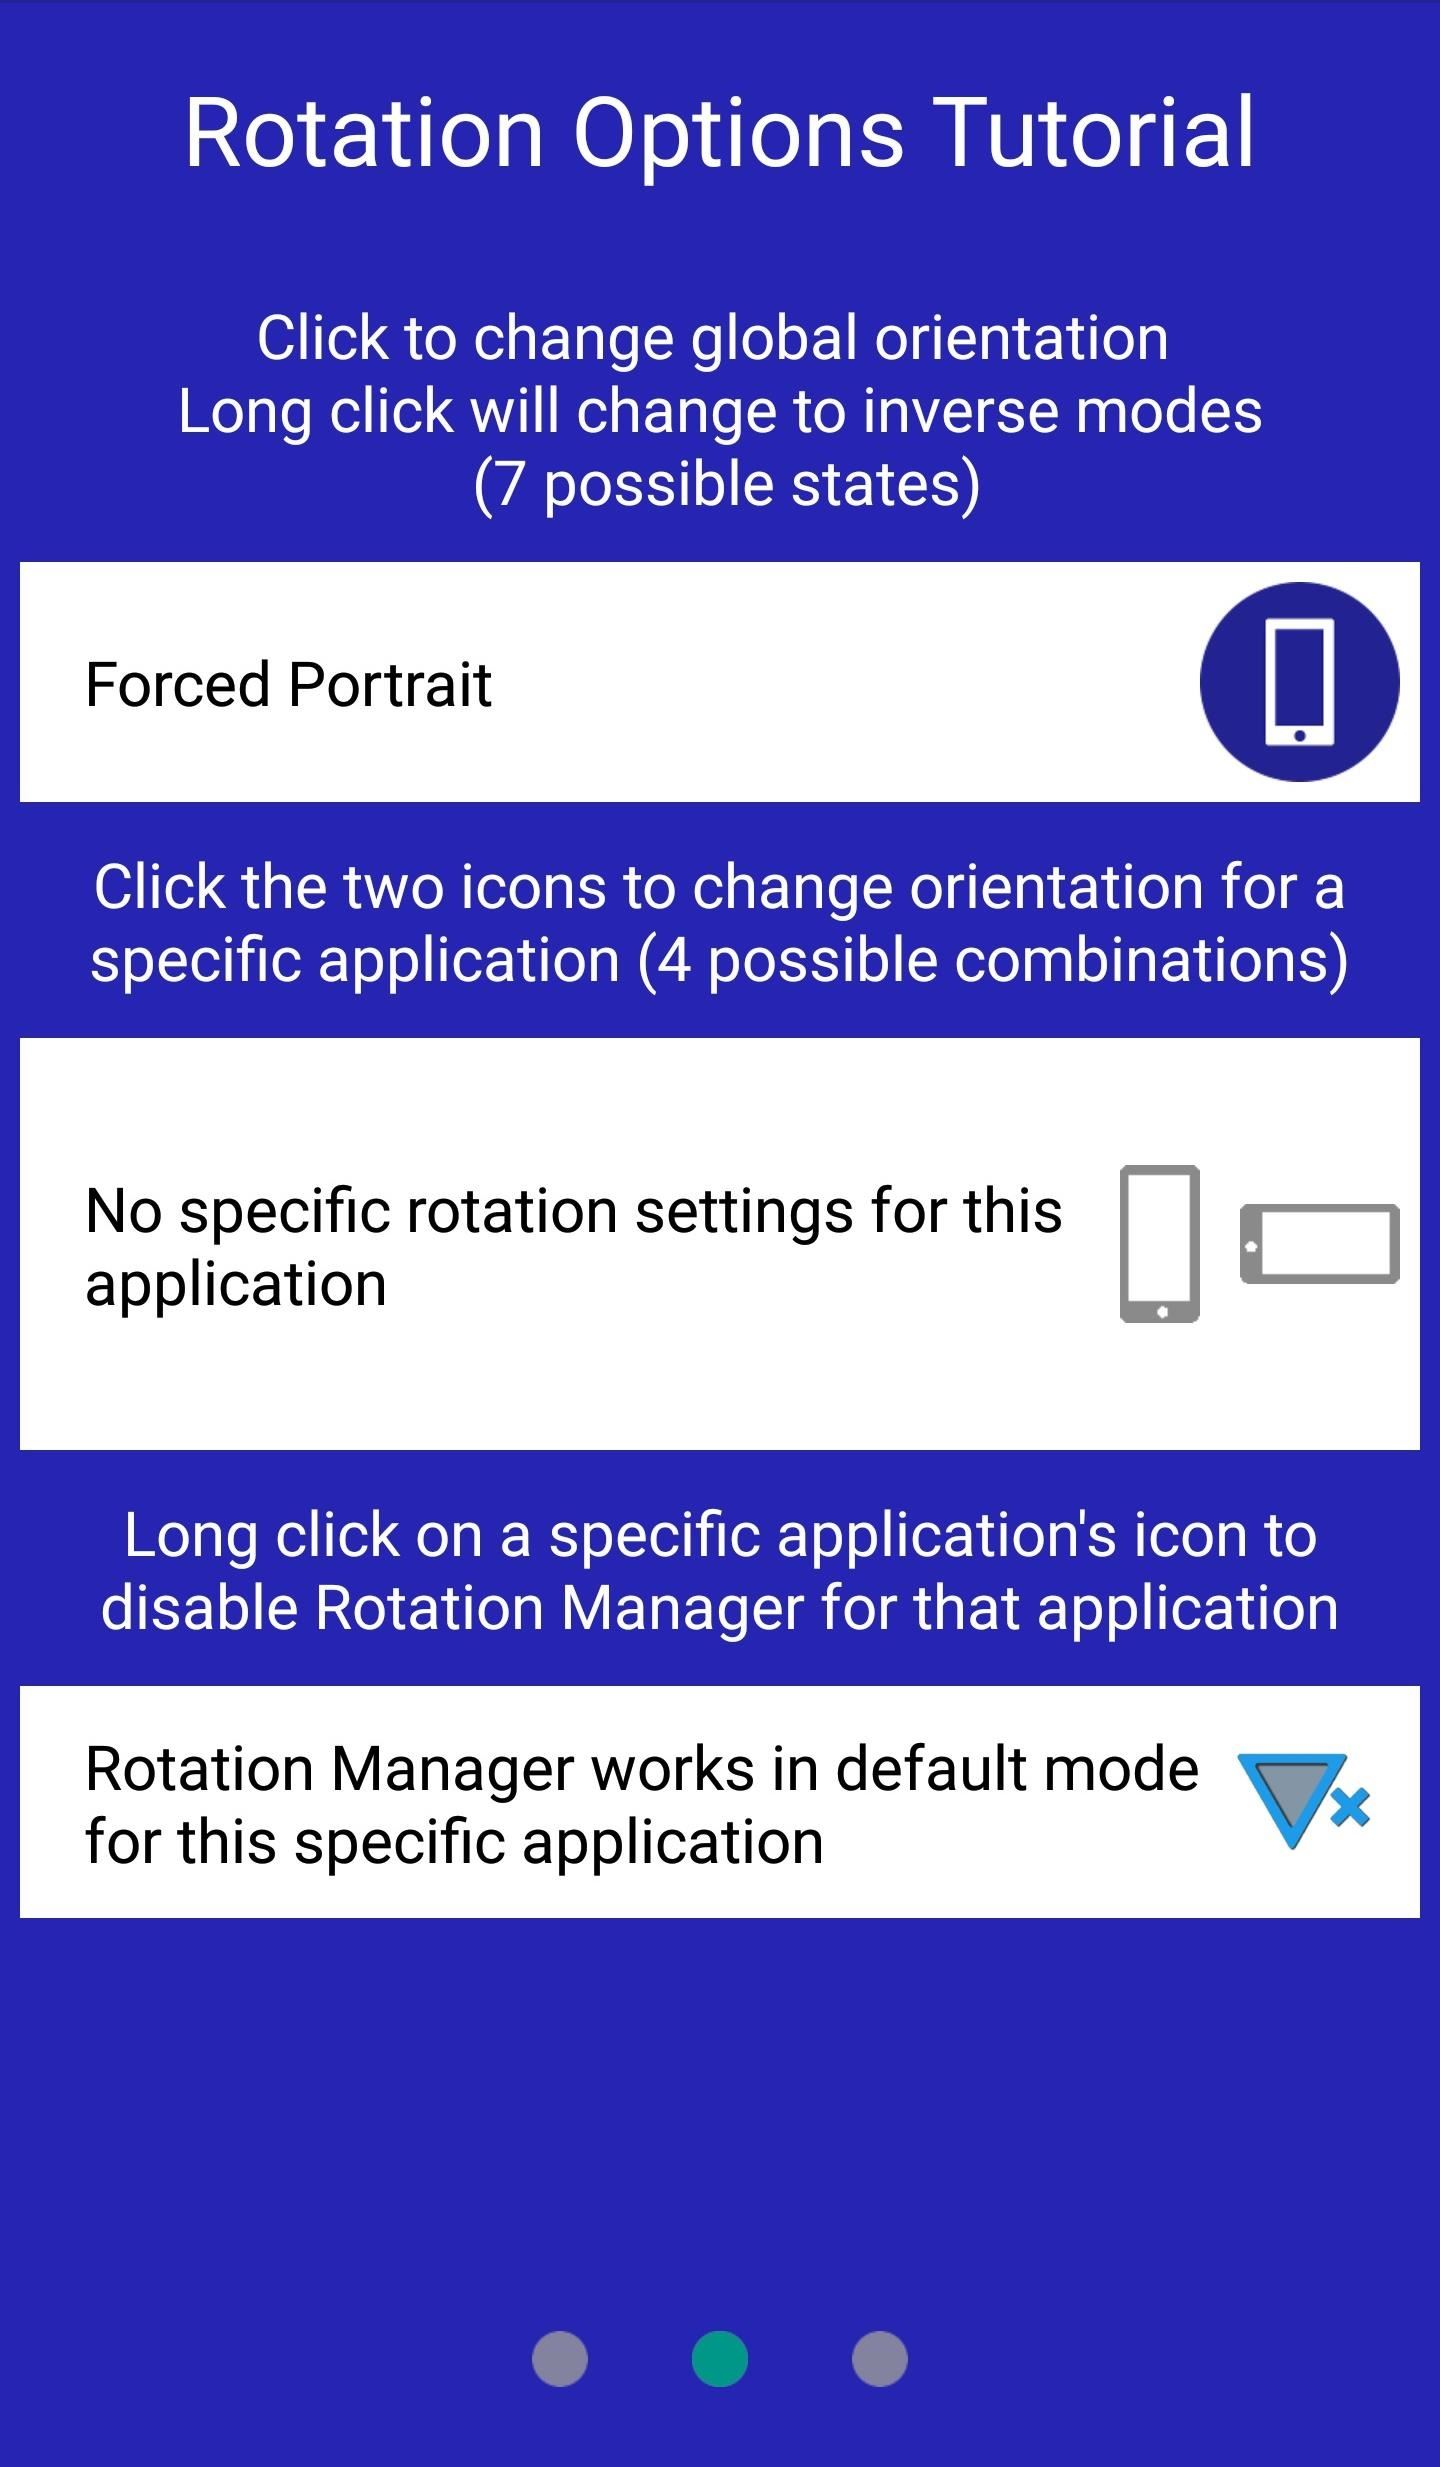 this will set portrait mode by default and let you customize rotation for other apps later on